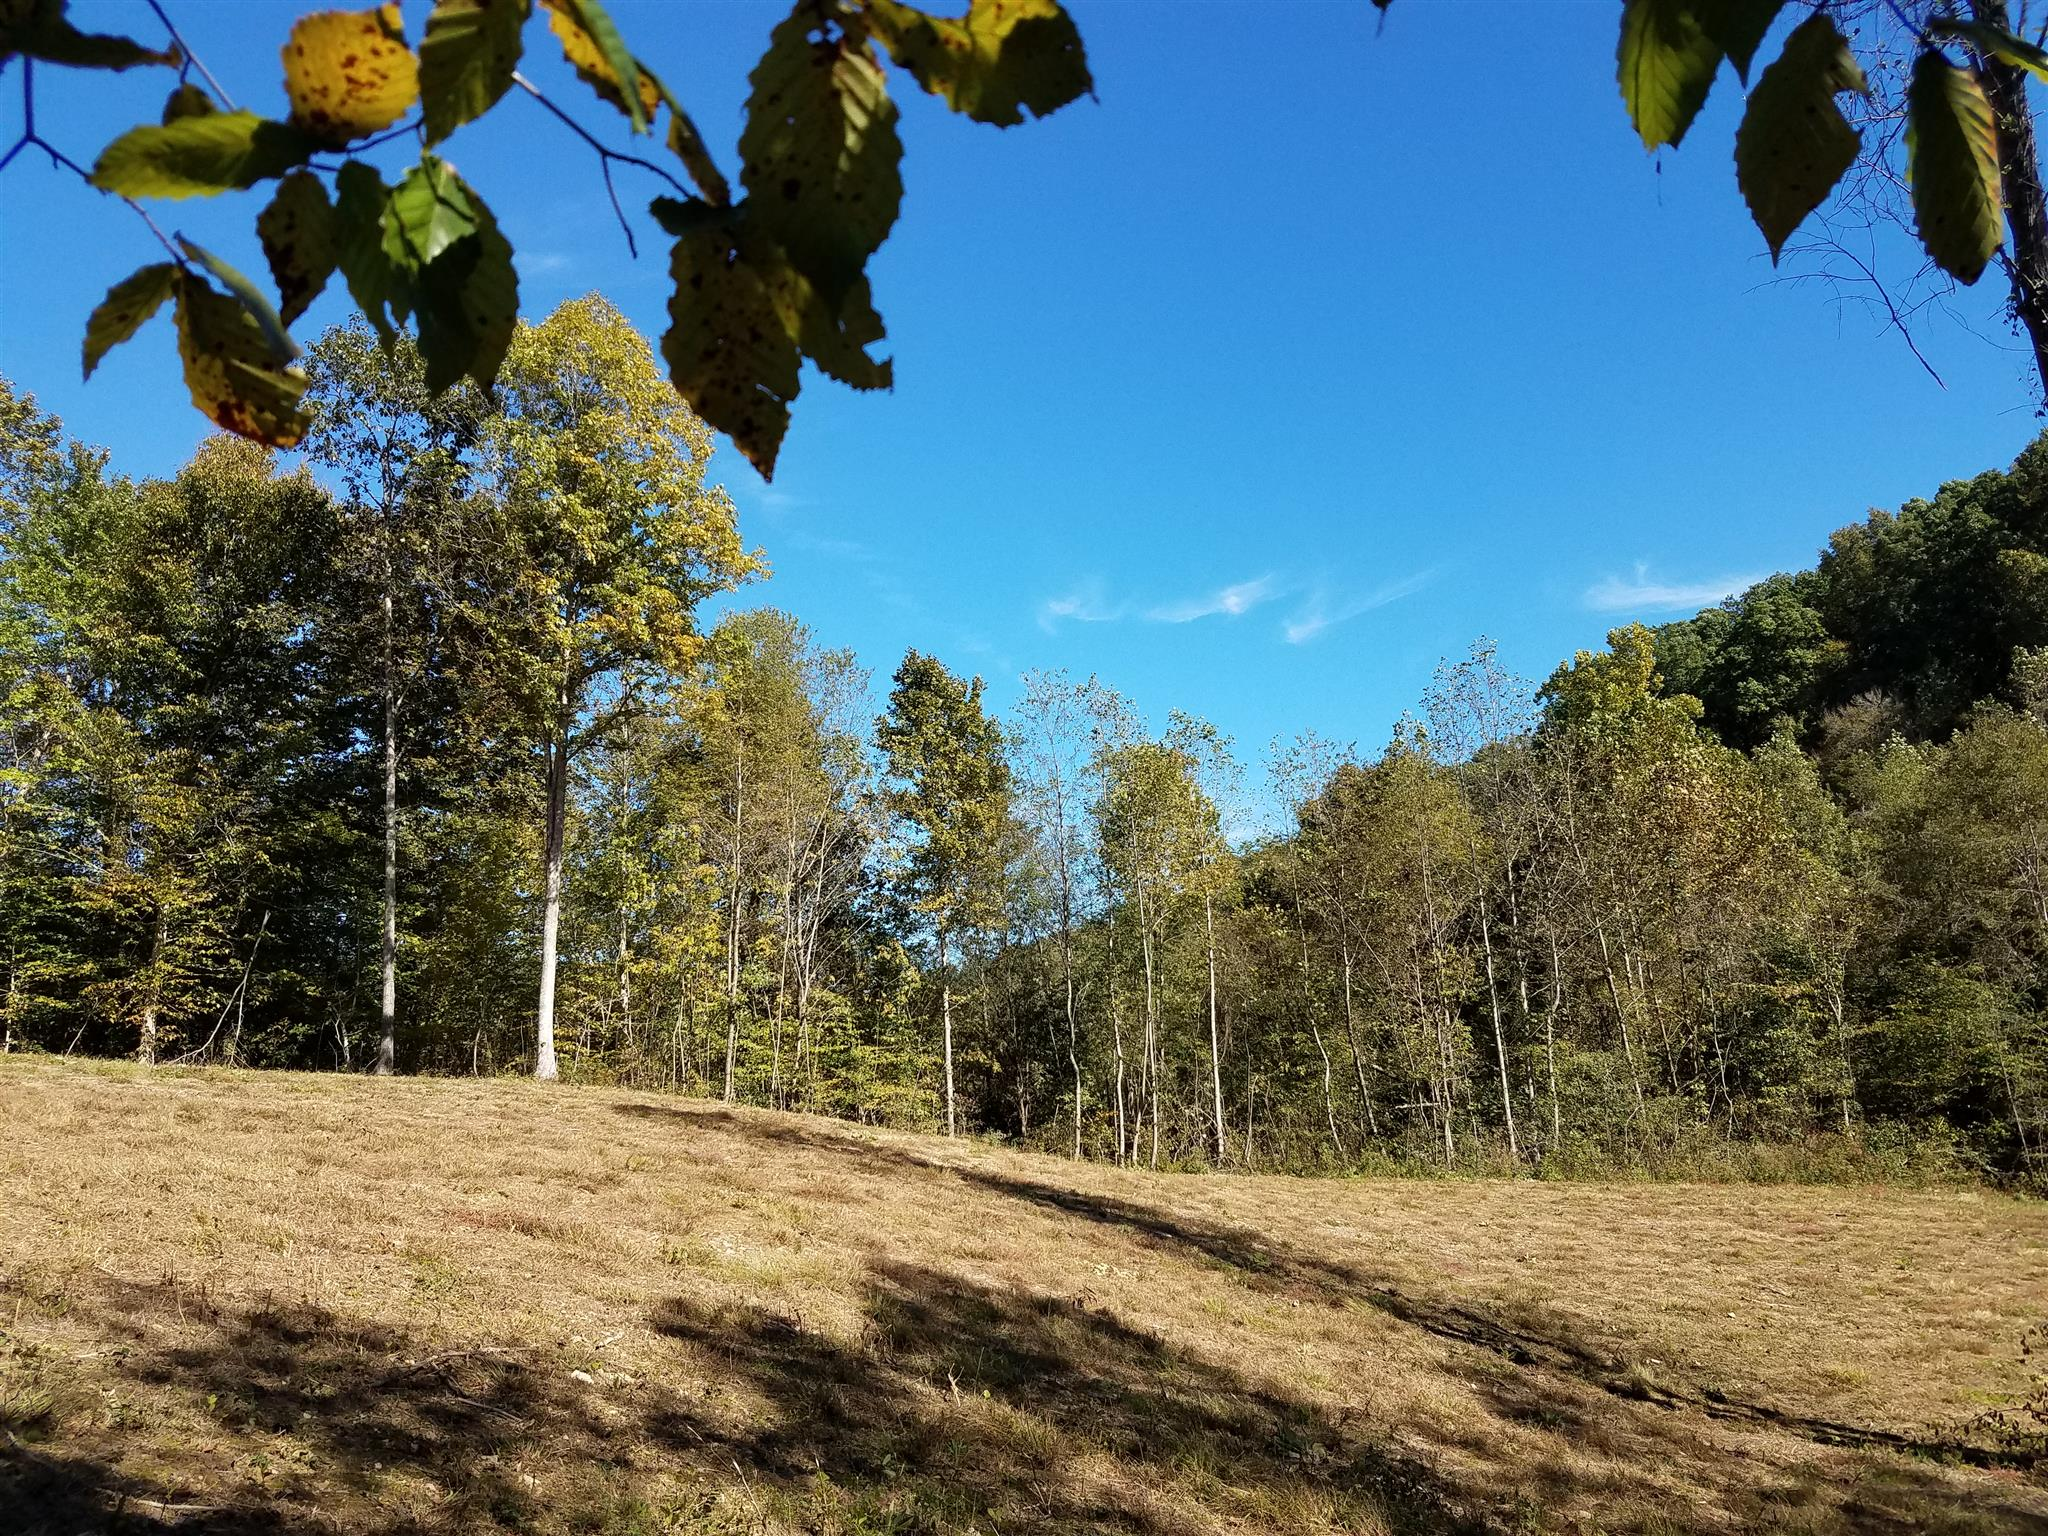 4 POPLAR RIDGE - LOT #4, Primm Springs, TN 38476 - Primm Springs, TN real estate listing